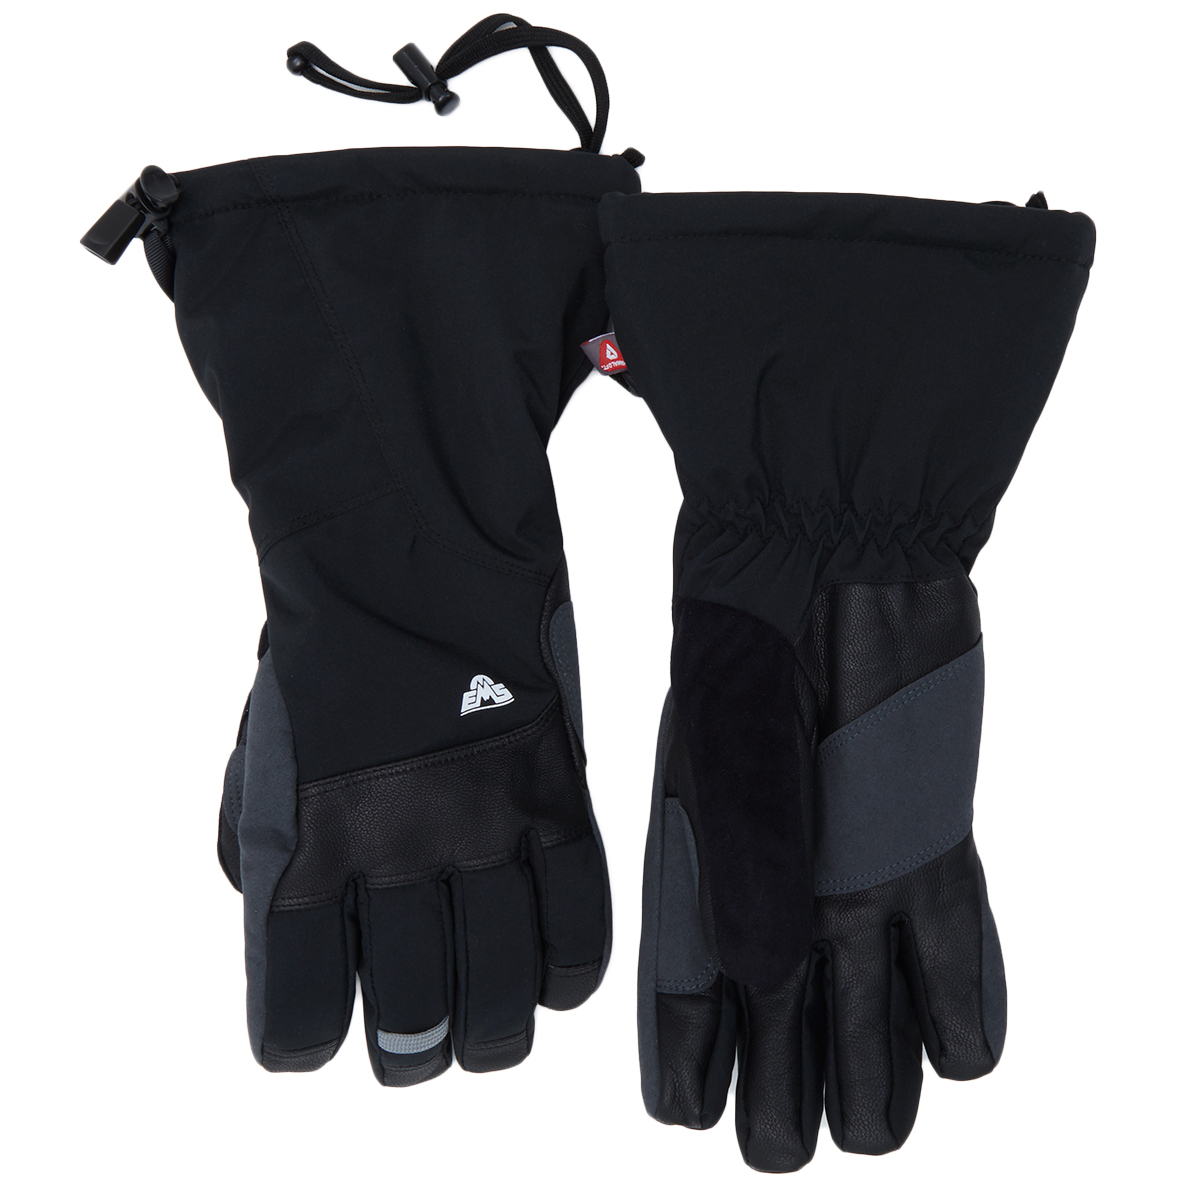 Ems Women's Ascent Summit Gloves - Black, S